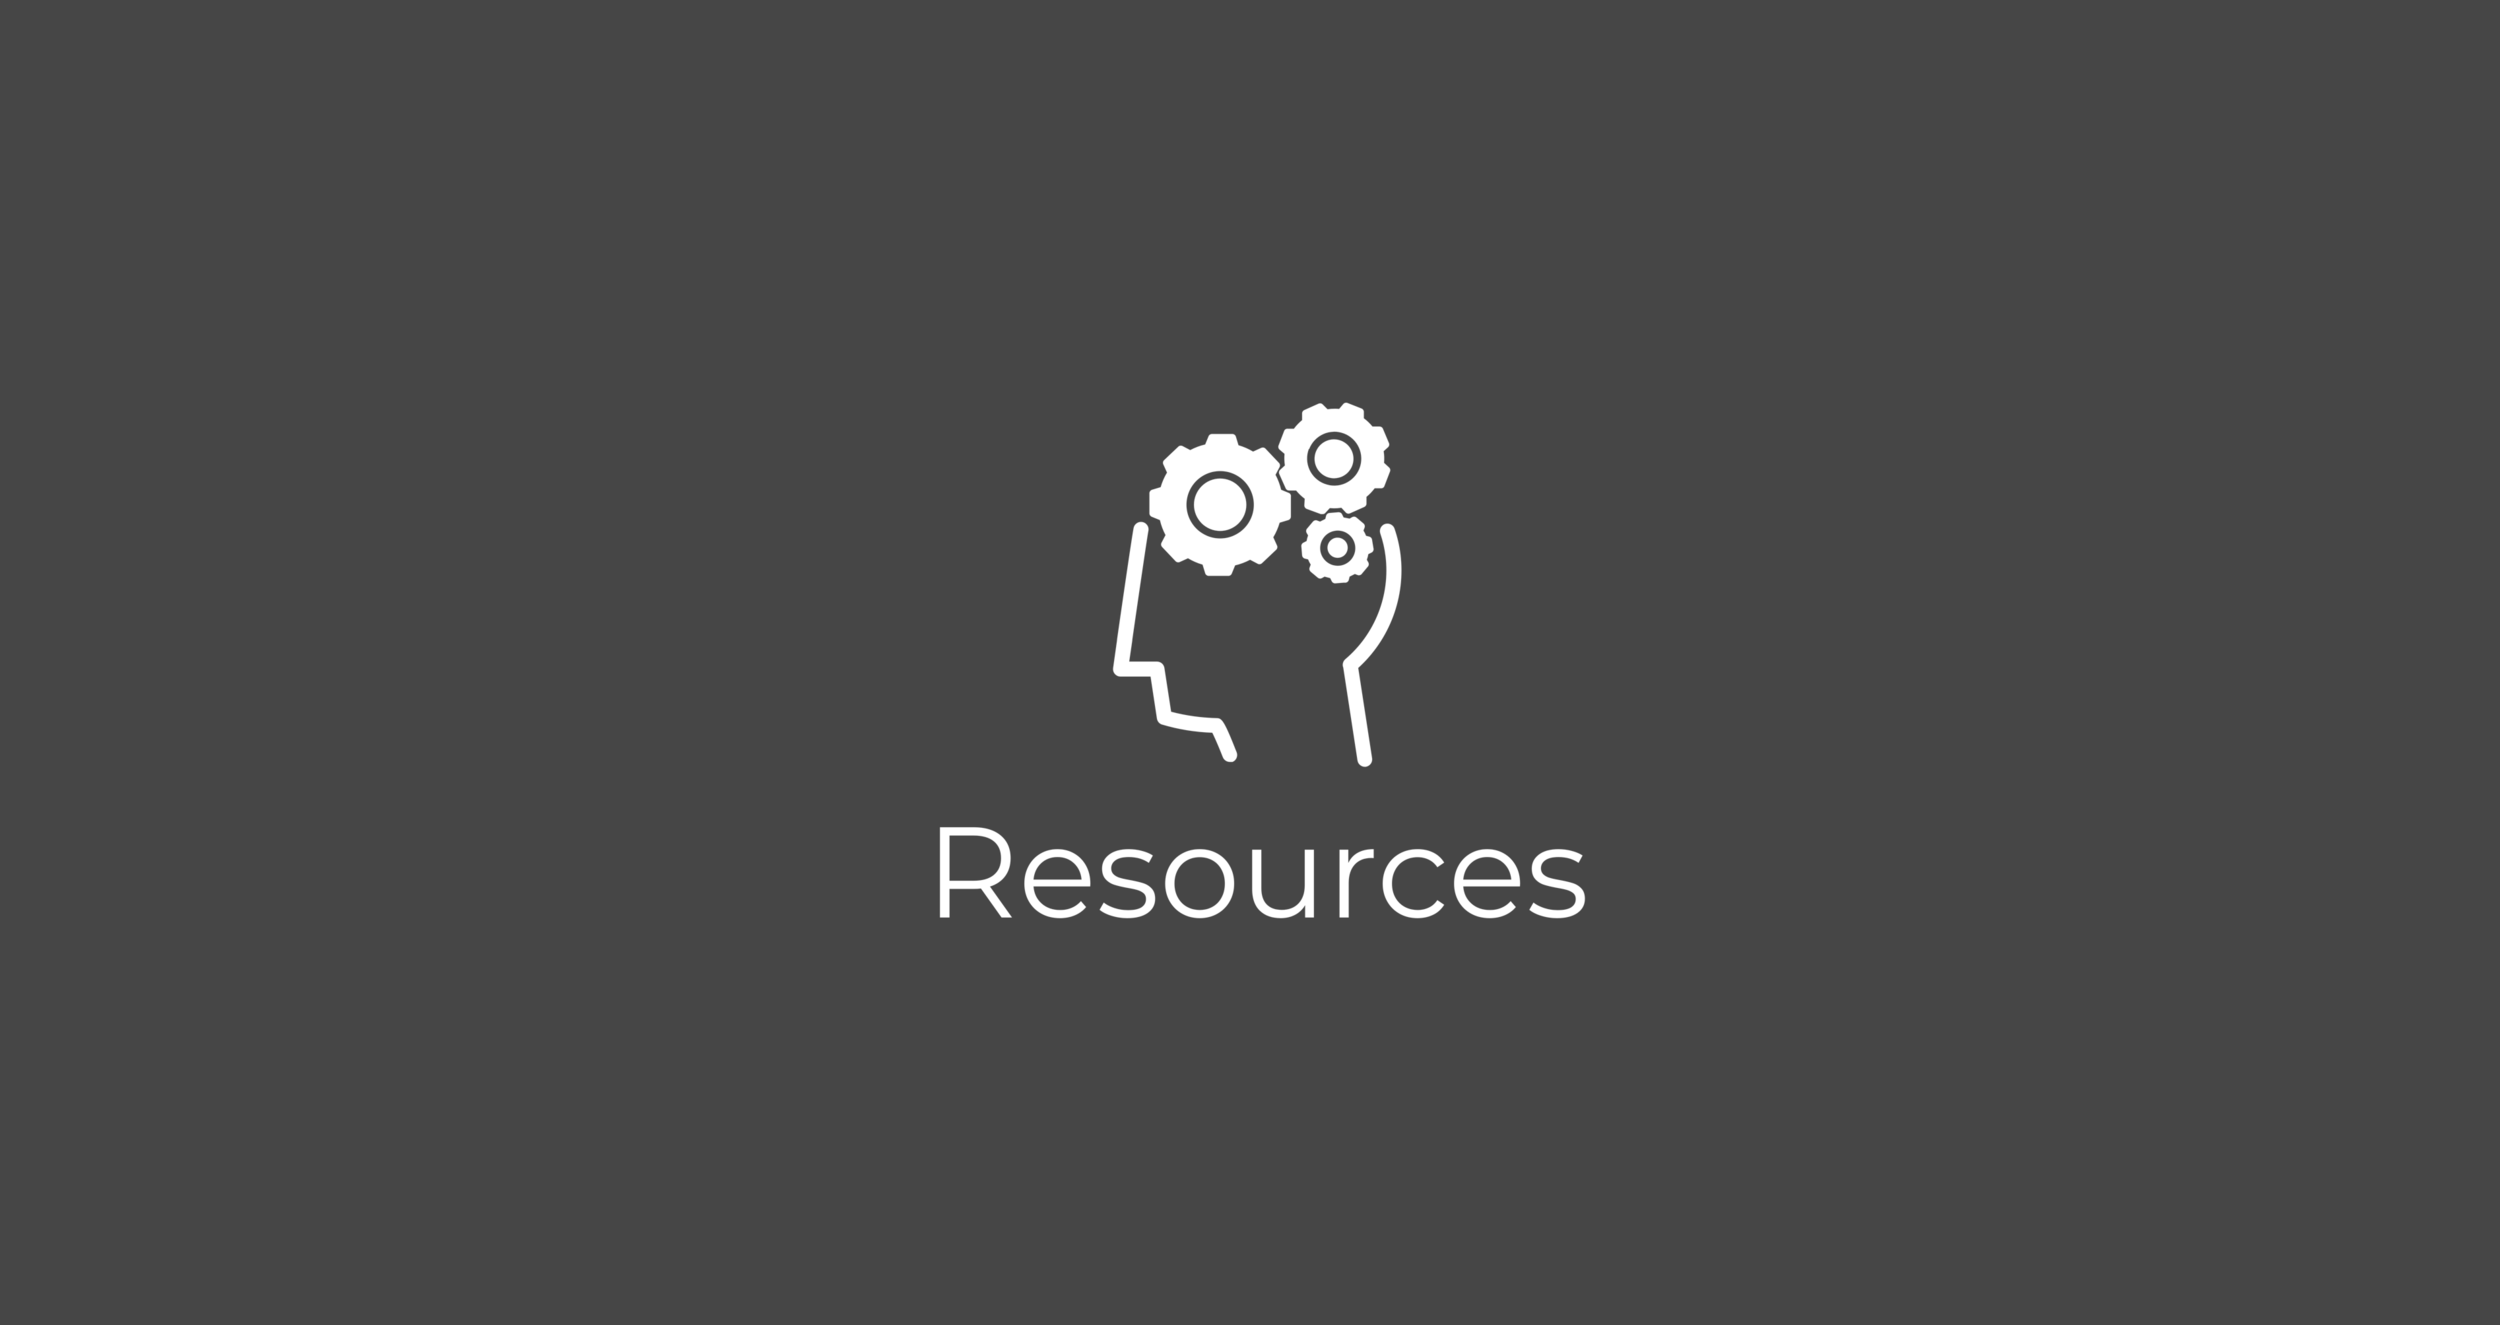 Resources Grey.png